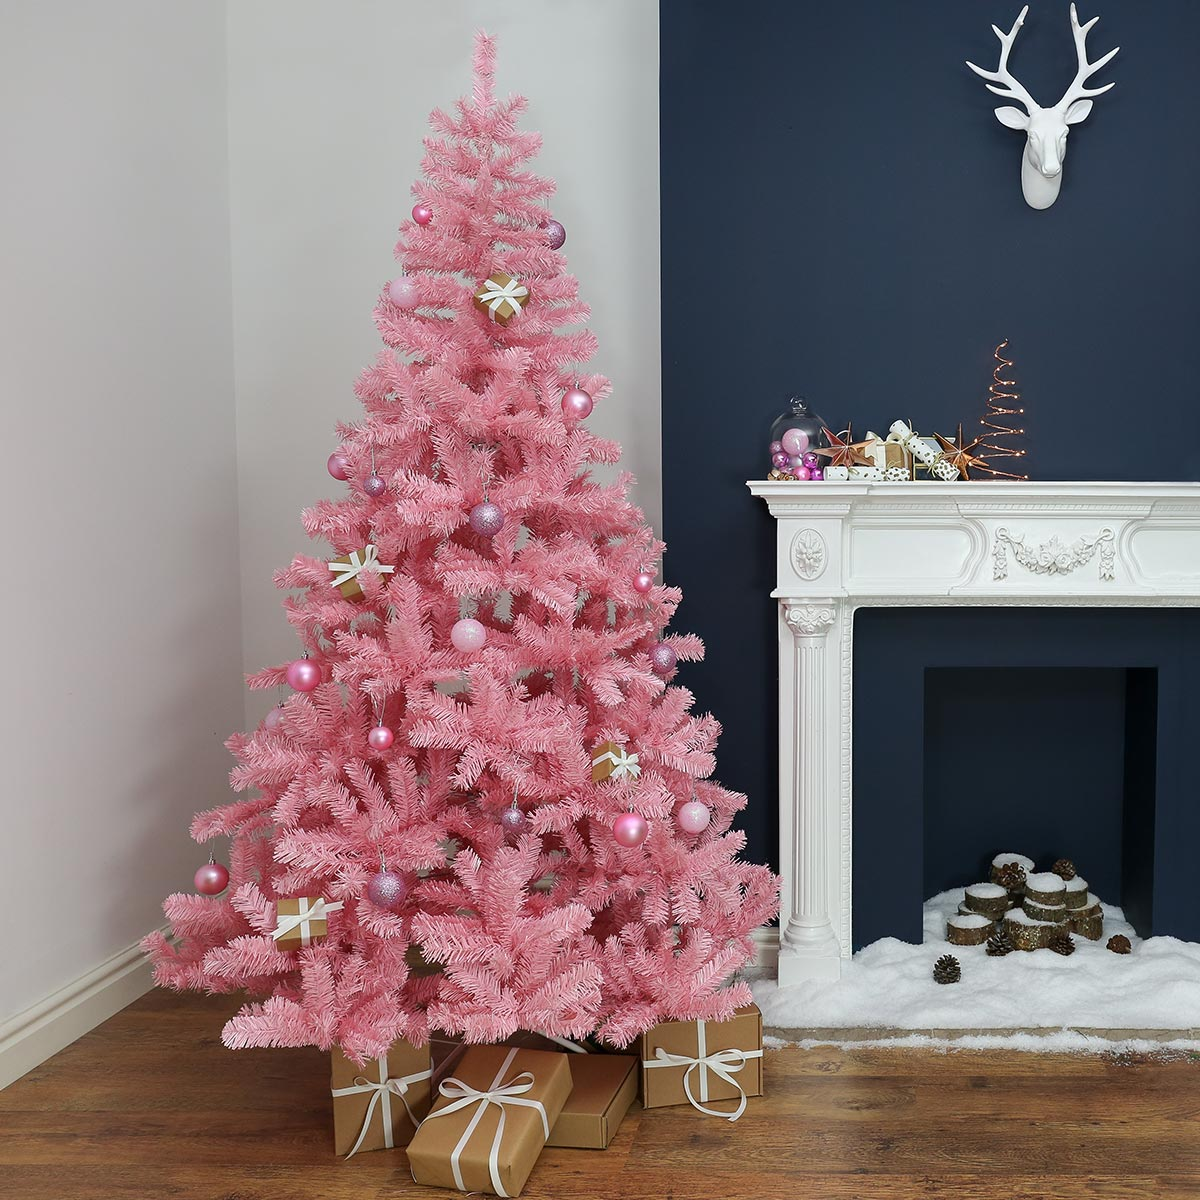 Pink Christmas Trees Are In Demand Artificial Christmas